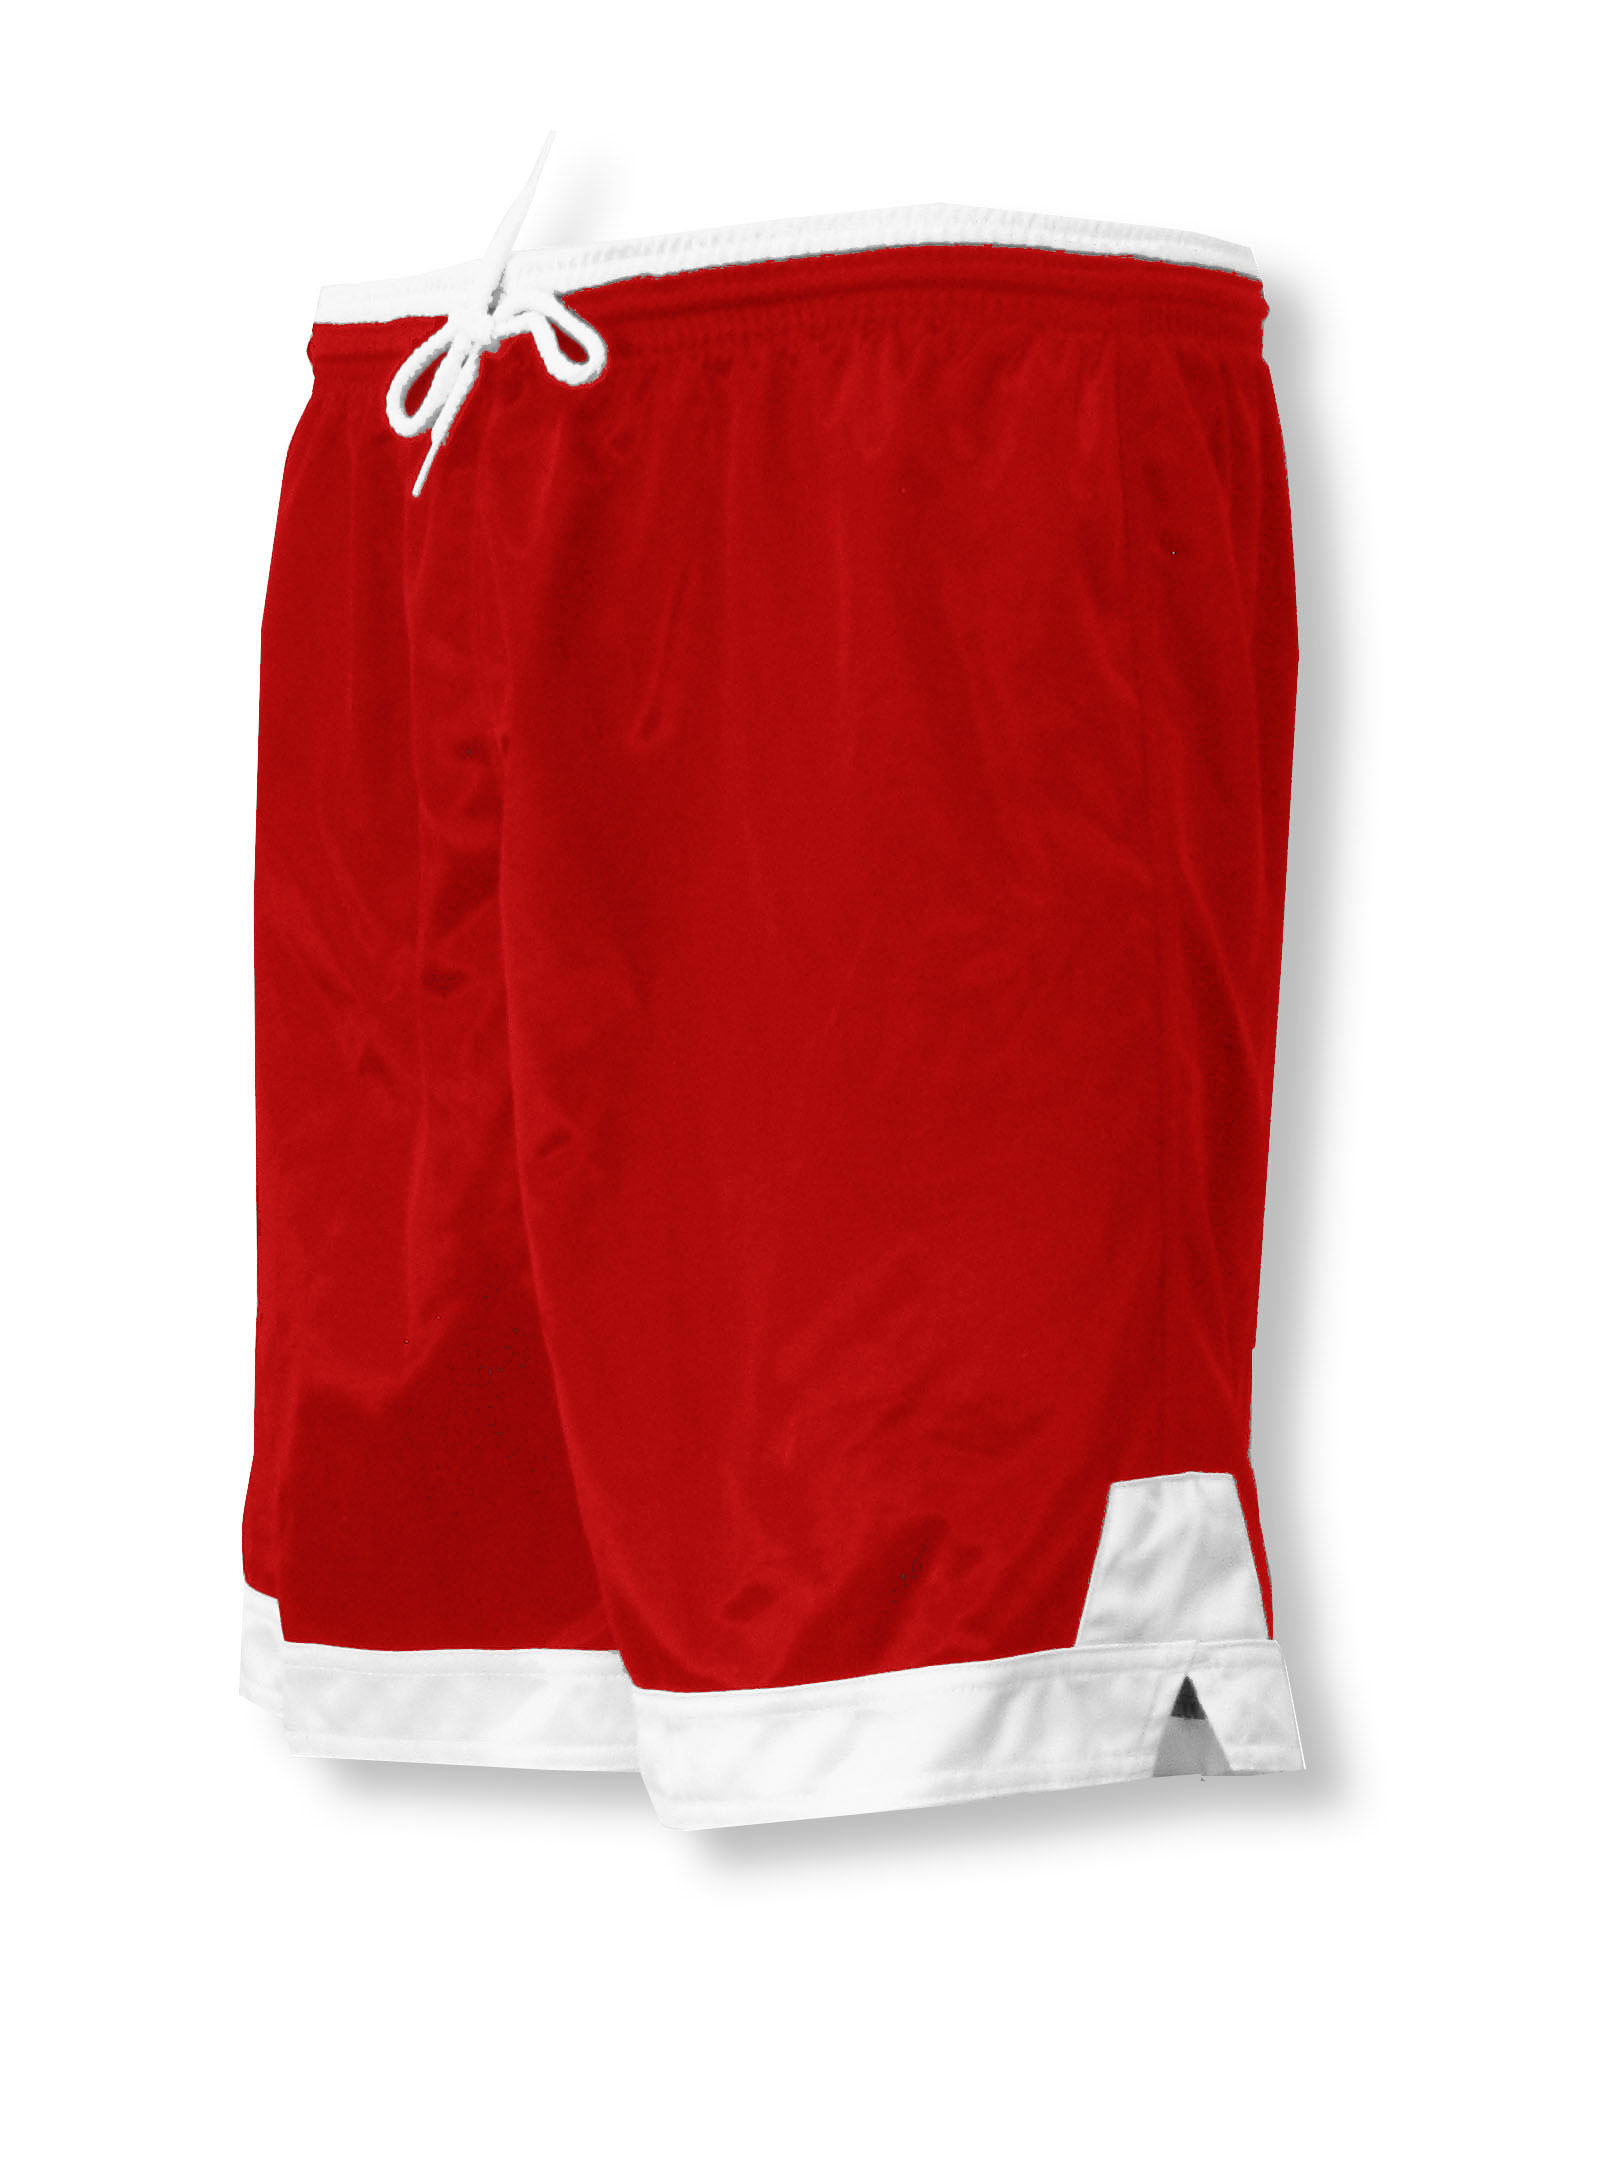 Winchester soccer shorts in red/white by Code Four Athletics